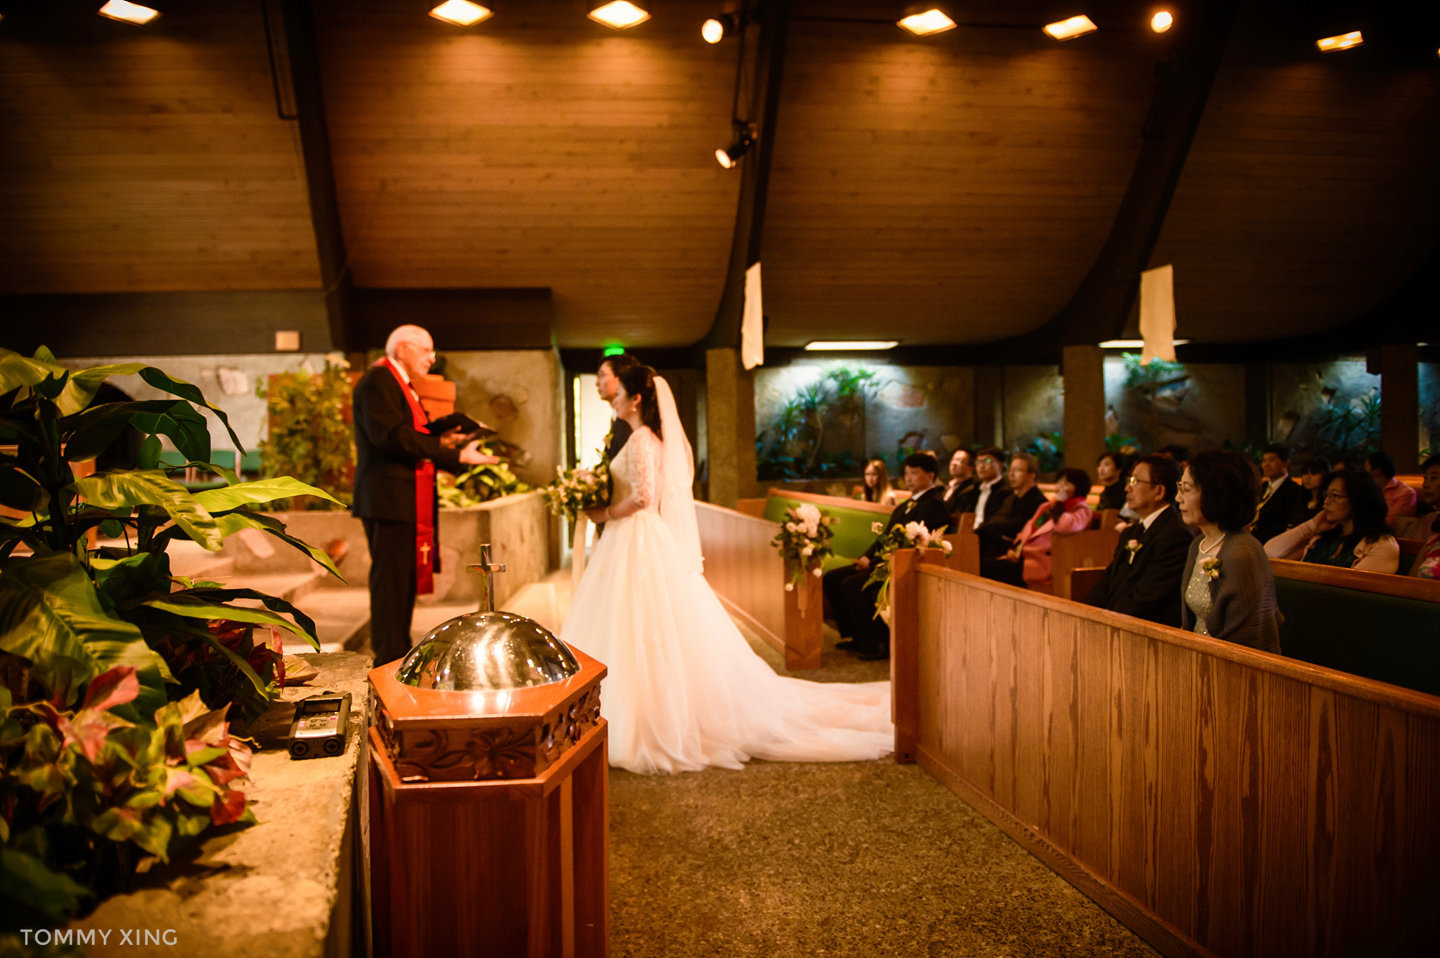 San Francisco Wedding Photography Valley Presbyterian Church WEDDING Tommy Xing Photography 洛杉矶旧金山婚礼婚纱照摄影师080.jpg